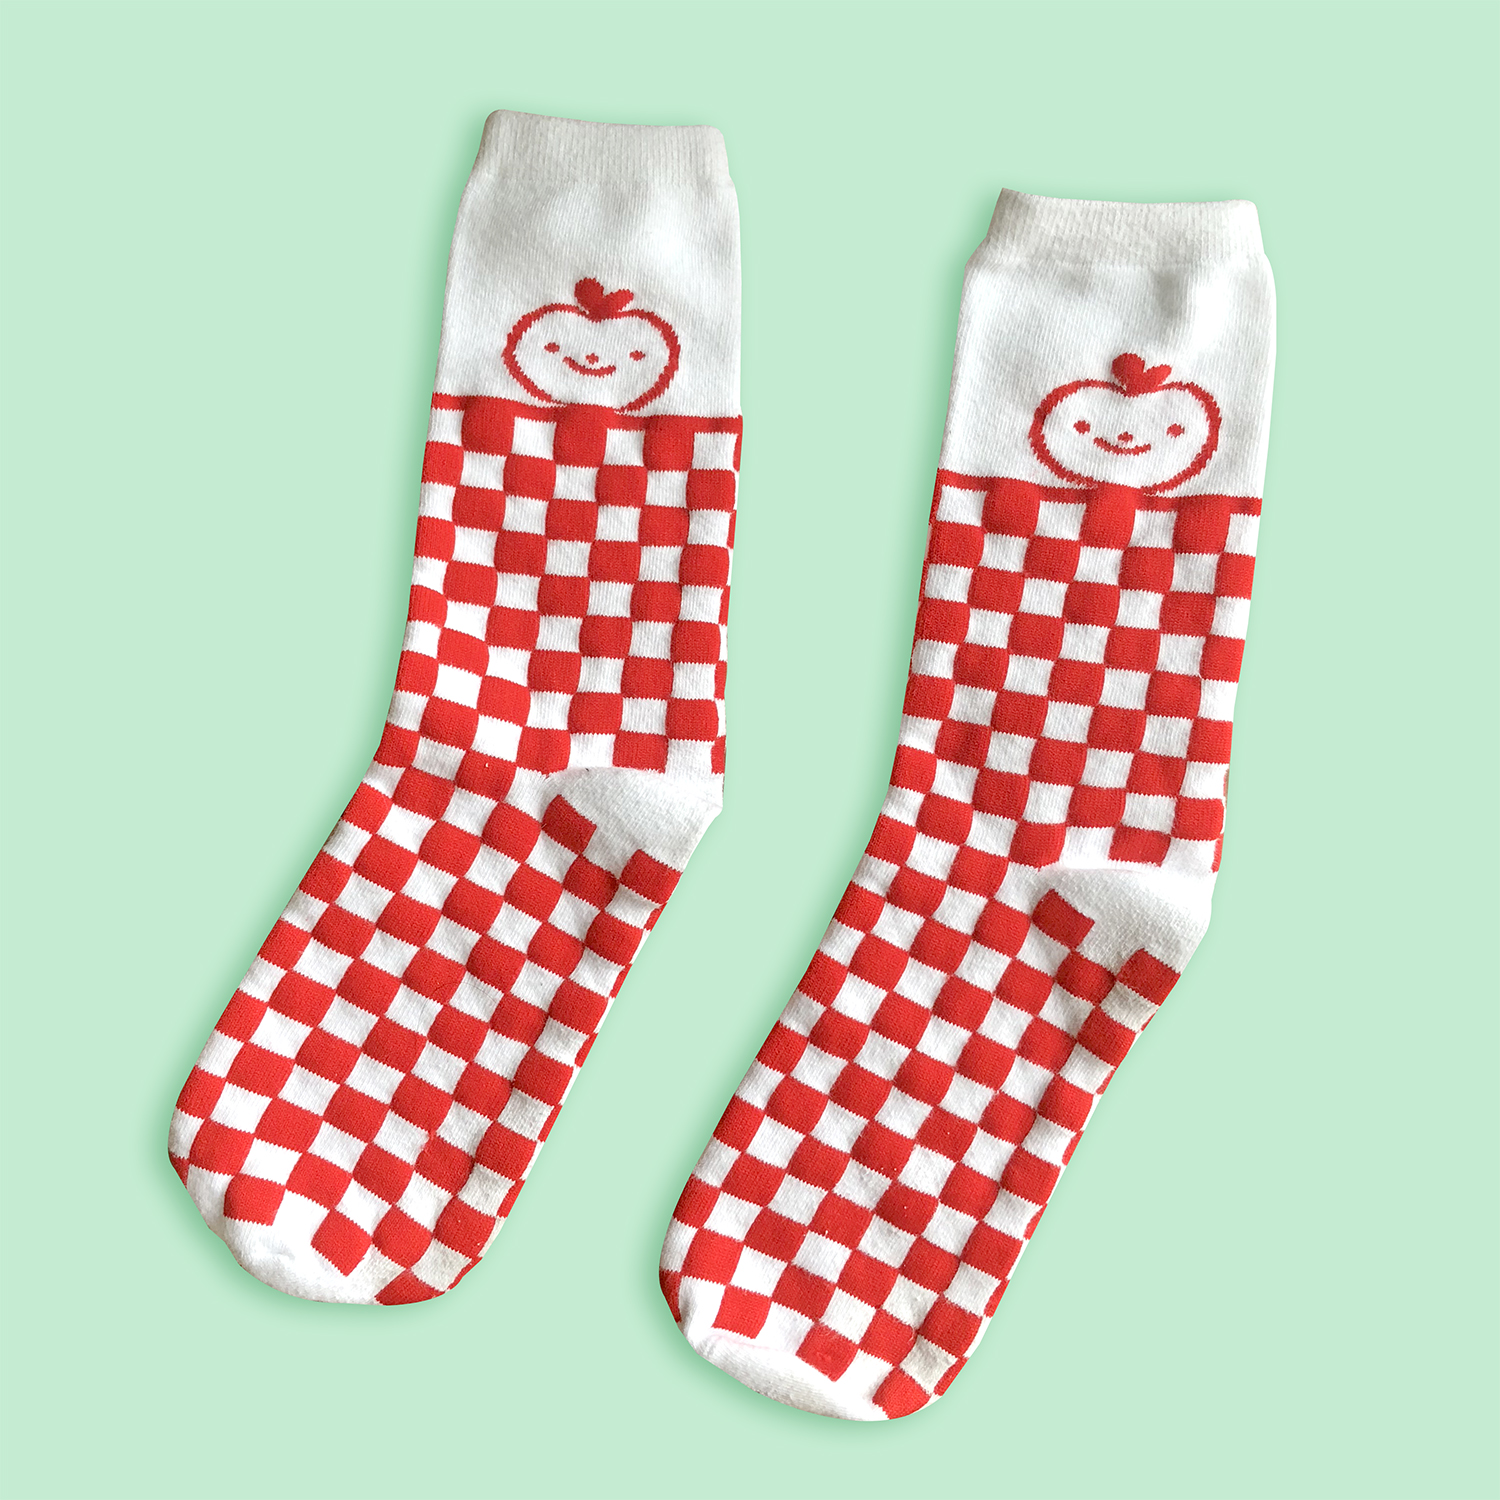 Illustrator Jennifer Xiao's merchandise - socks